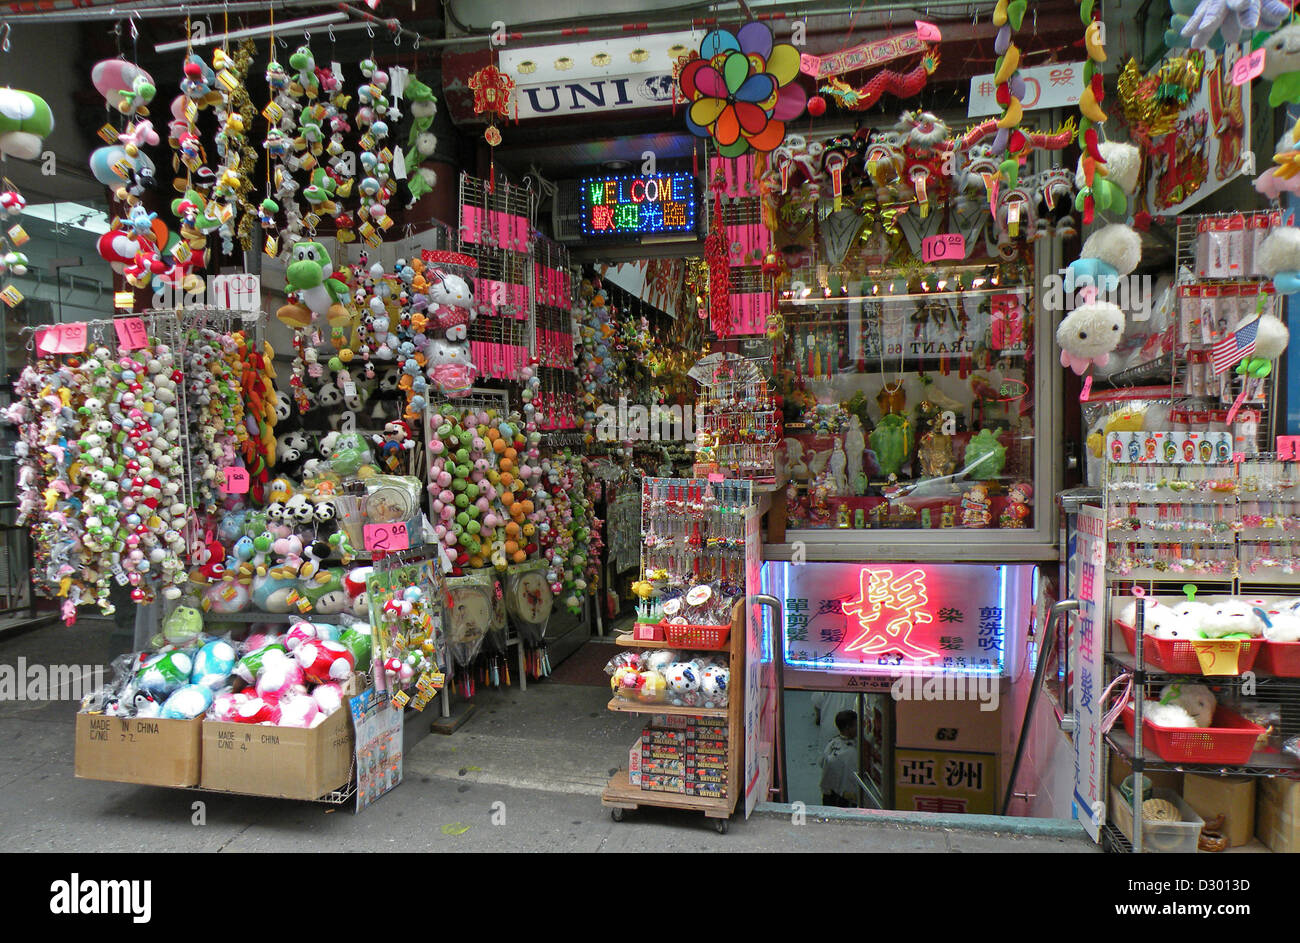 A tourist gift shop chinatown new york city with many for Gifts for new yorkers